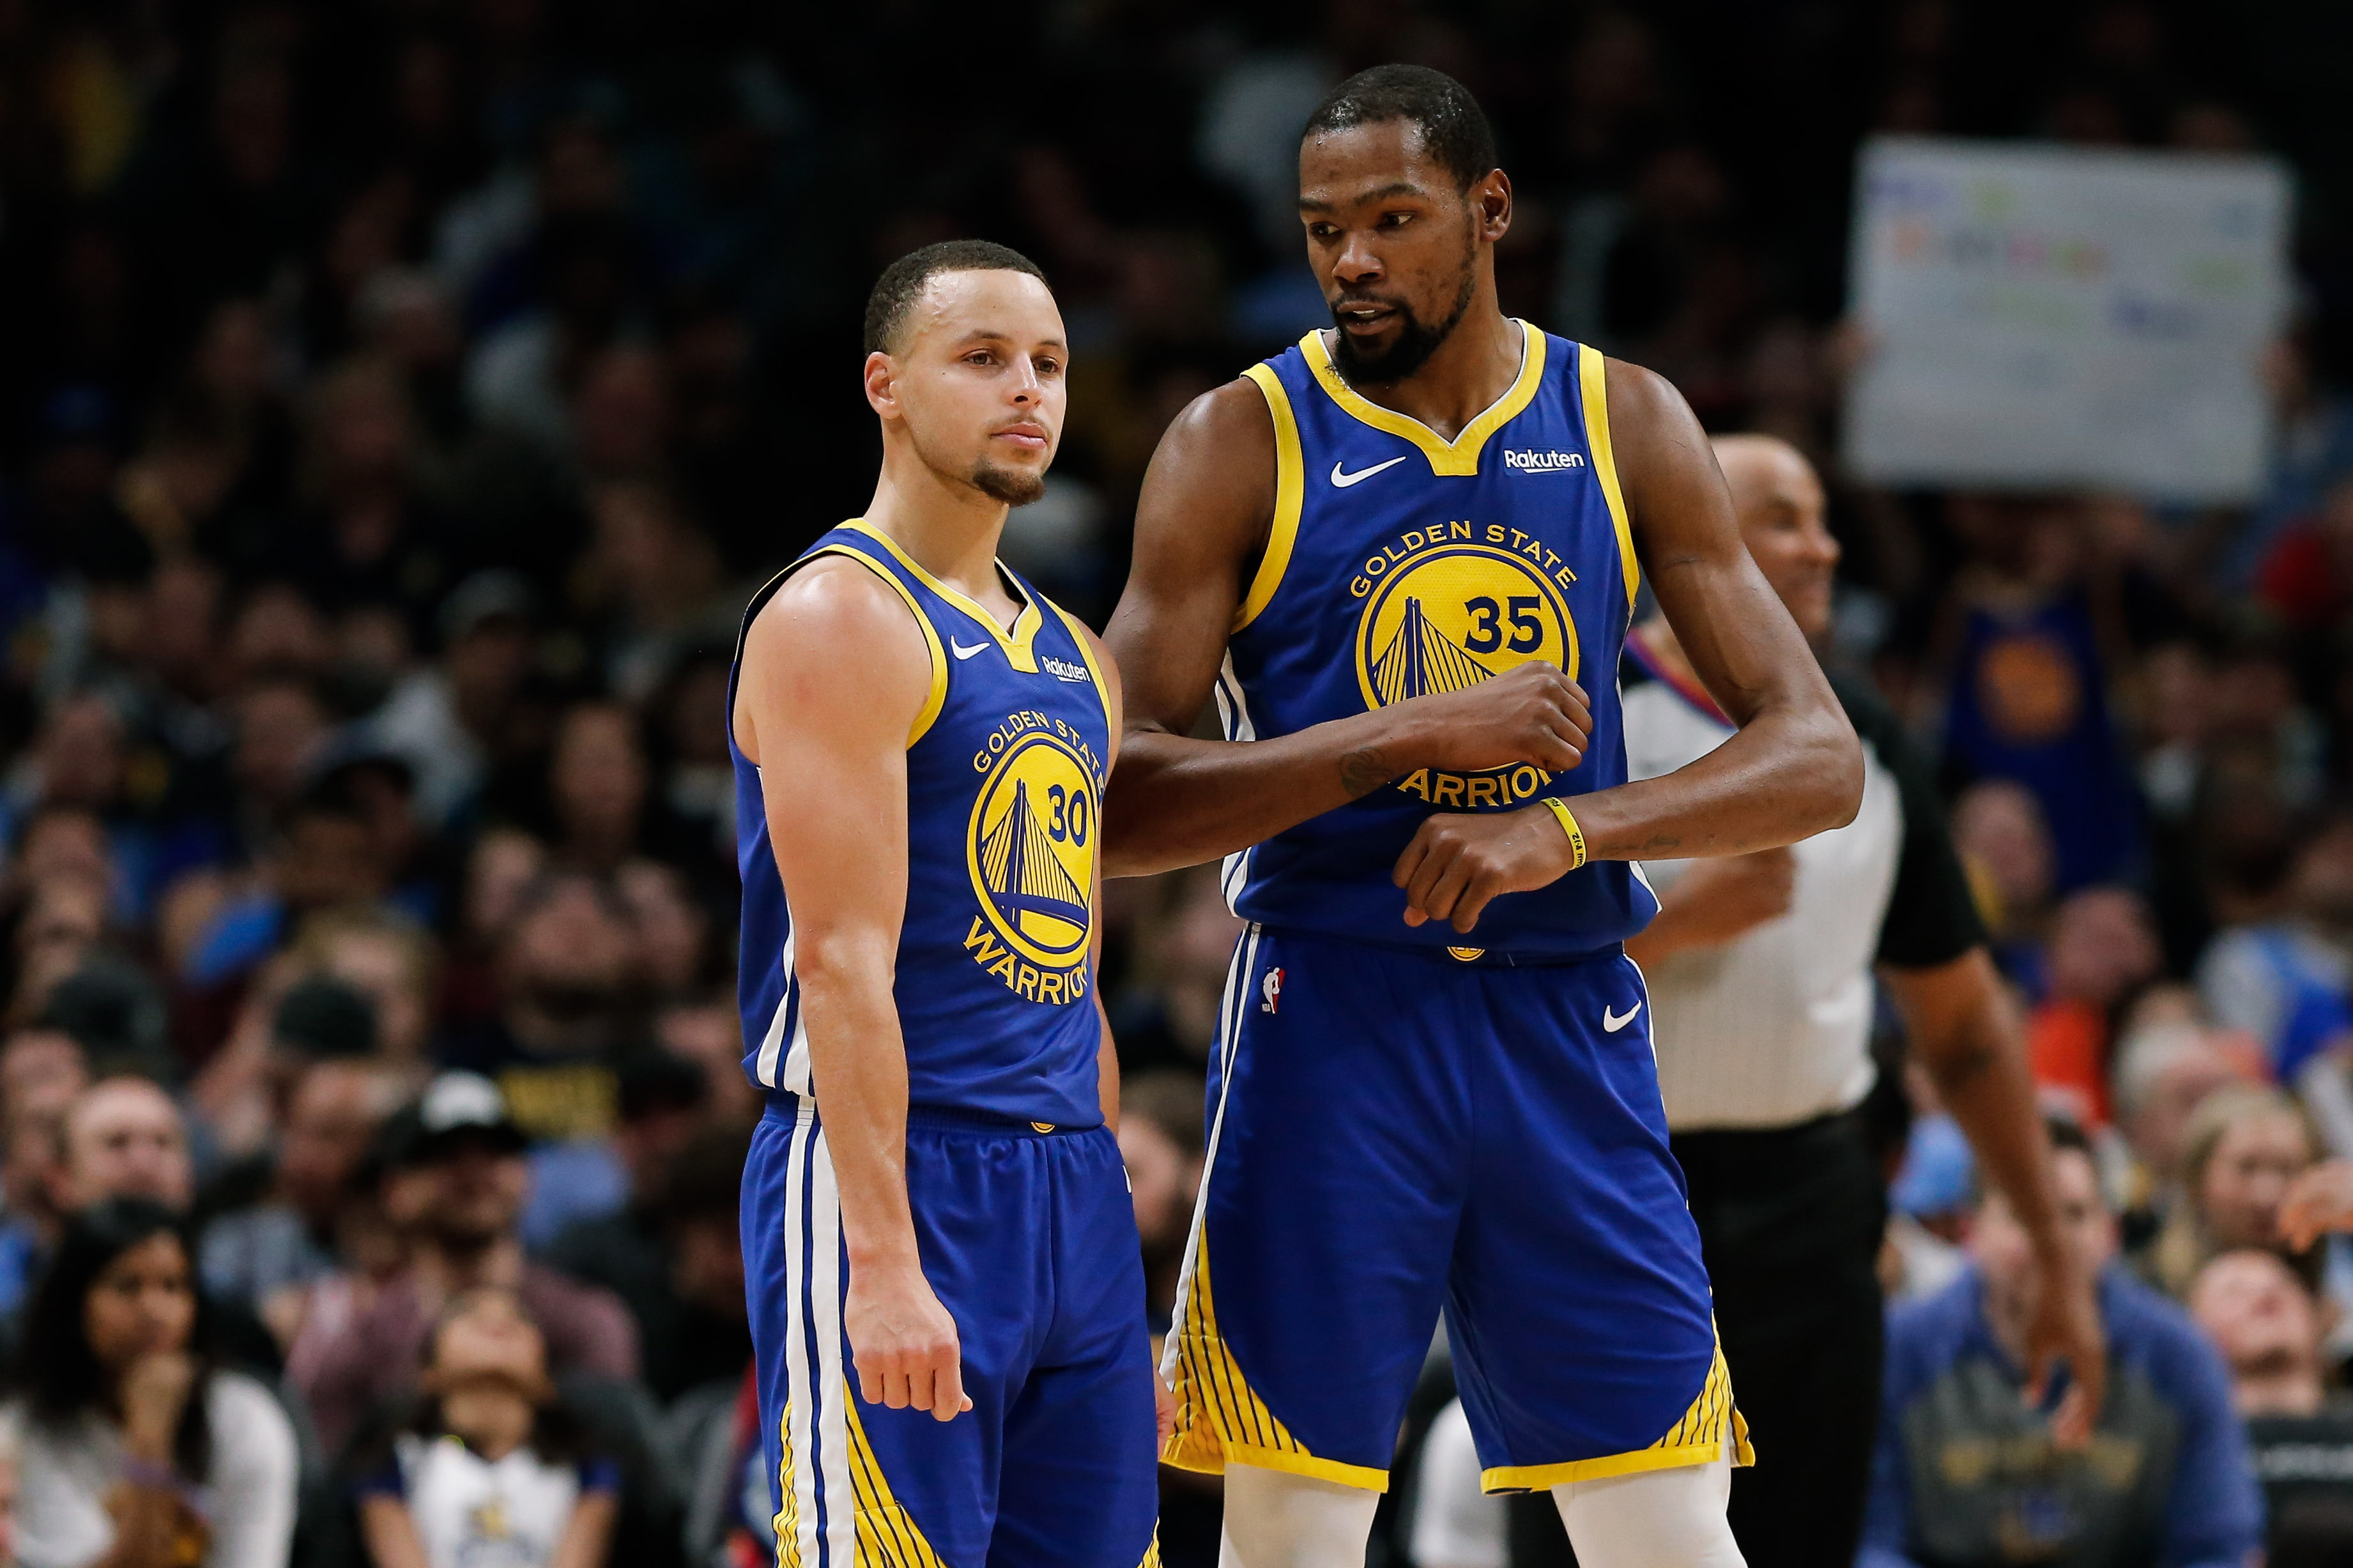 half off f5e67 34d9f Steph Curry, Kevin Durant, and Klay Thompson help set NBA ...